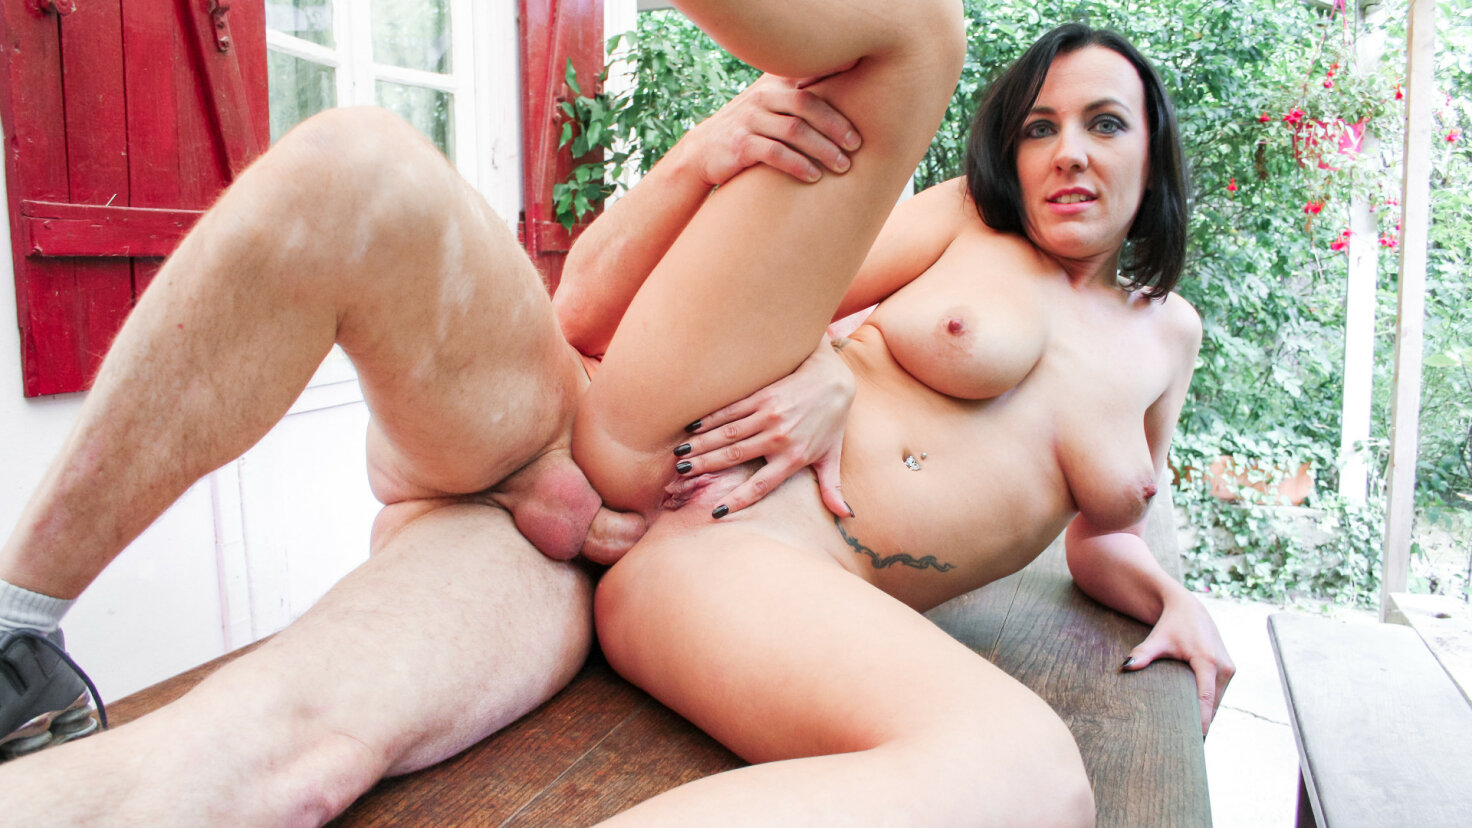 Intense fuck outdoors teaches French newbie to take a dick deep in her ass